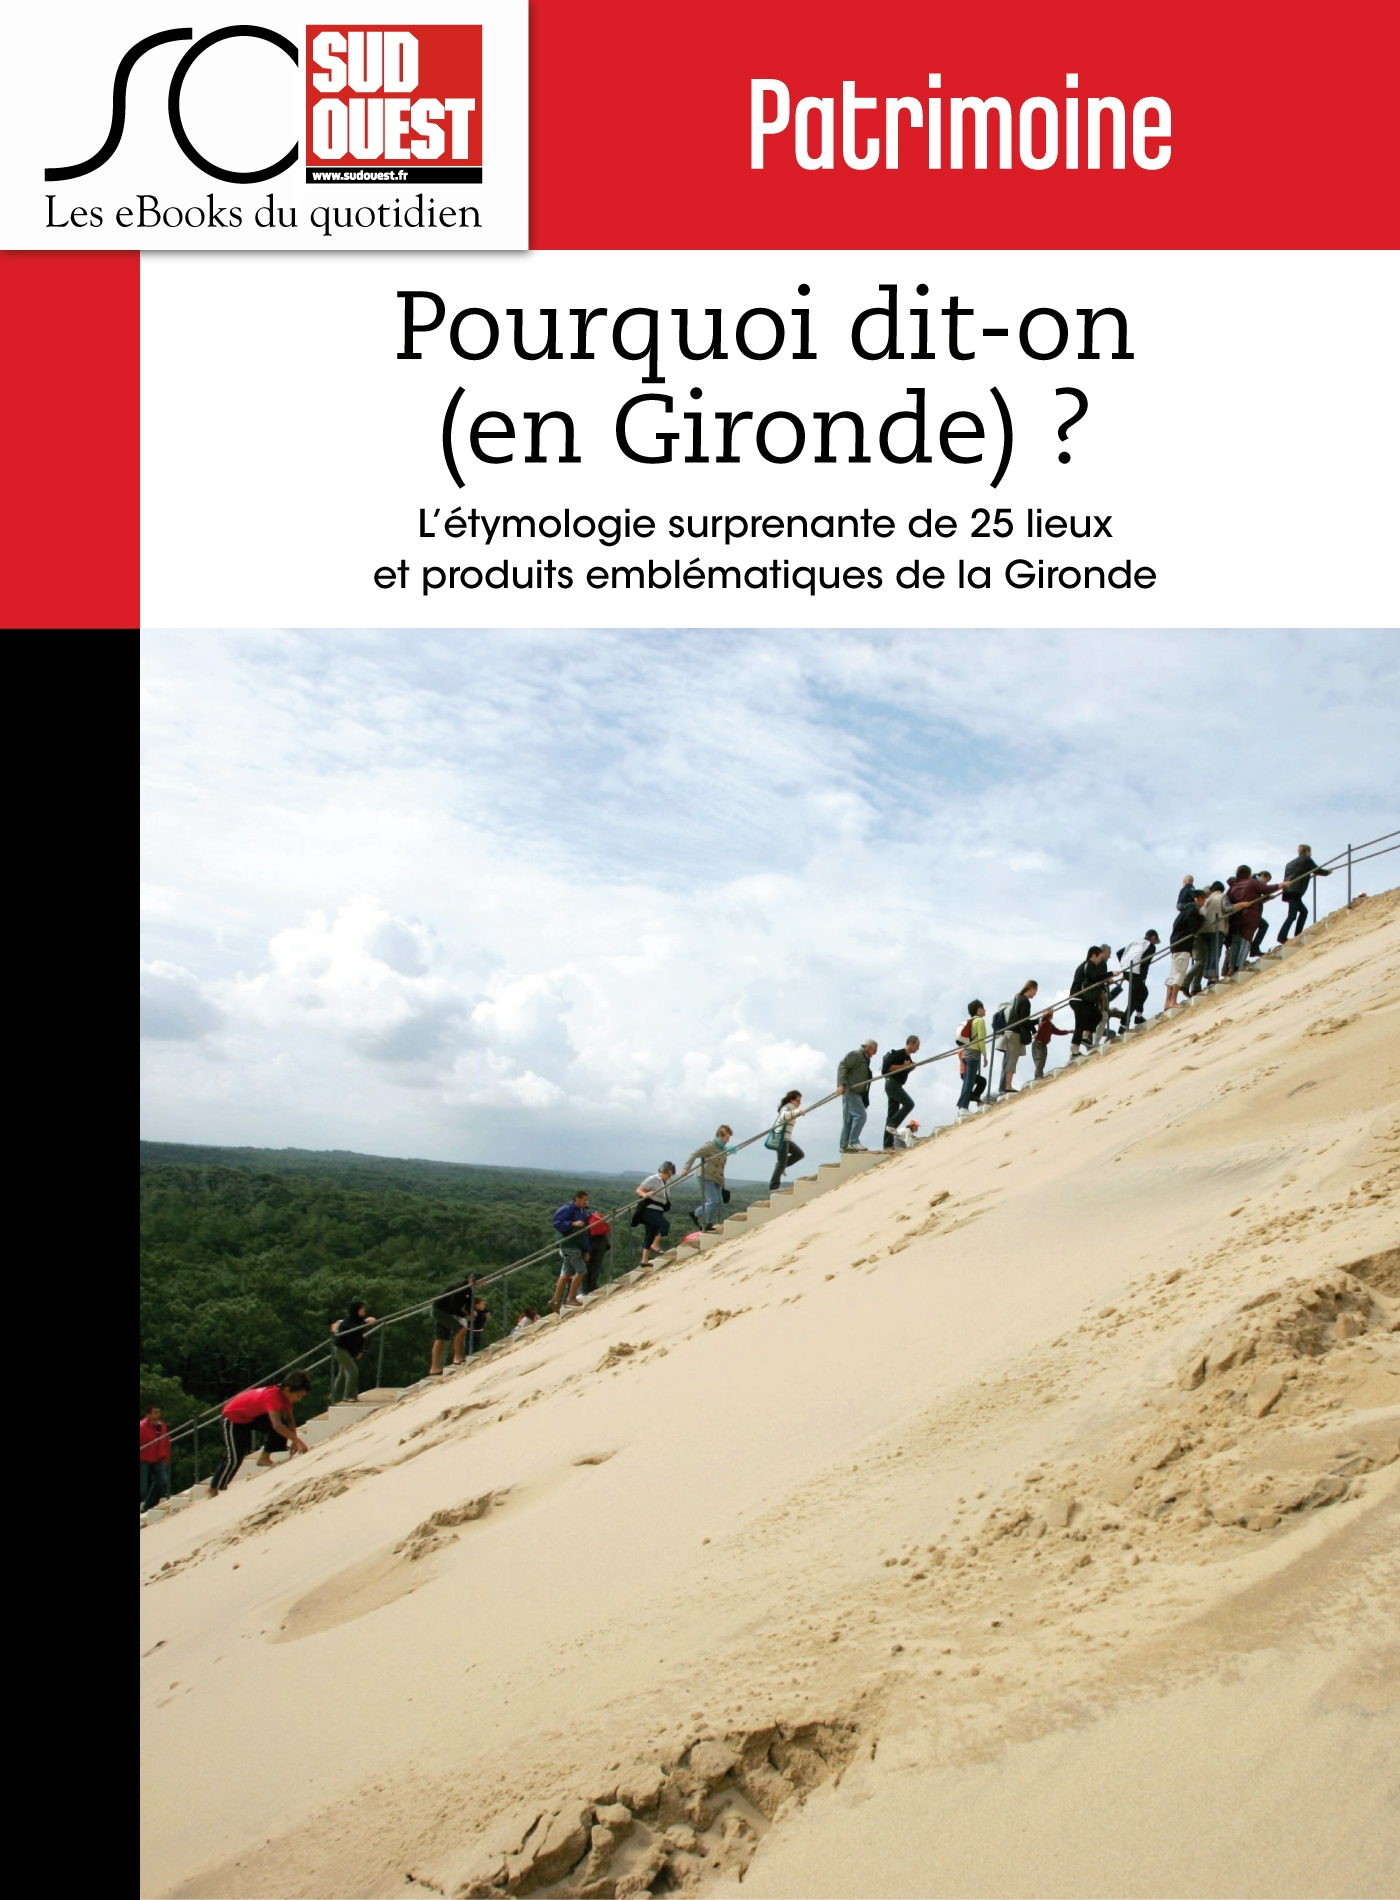 Pourquoi dit-on (en Gironde) ?